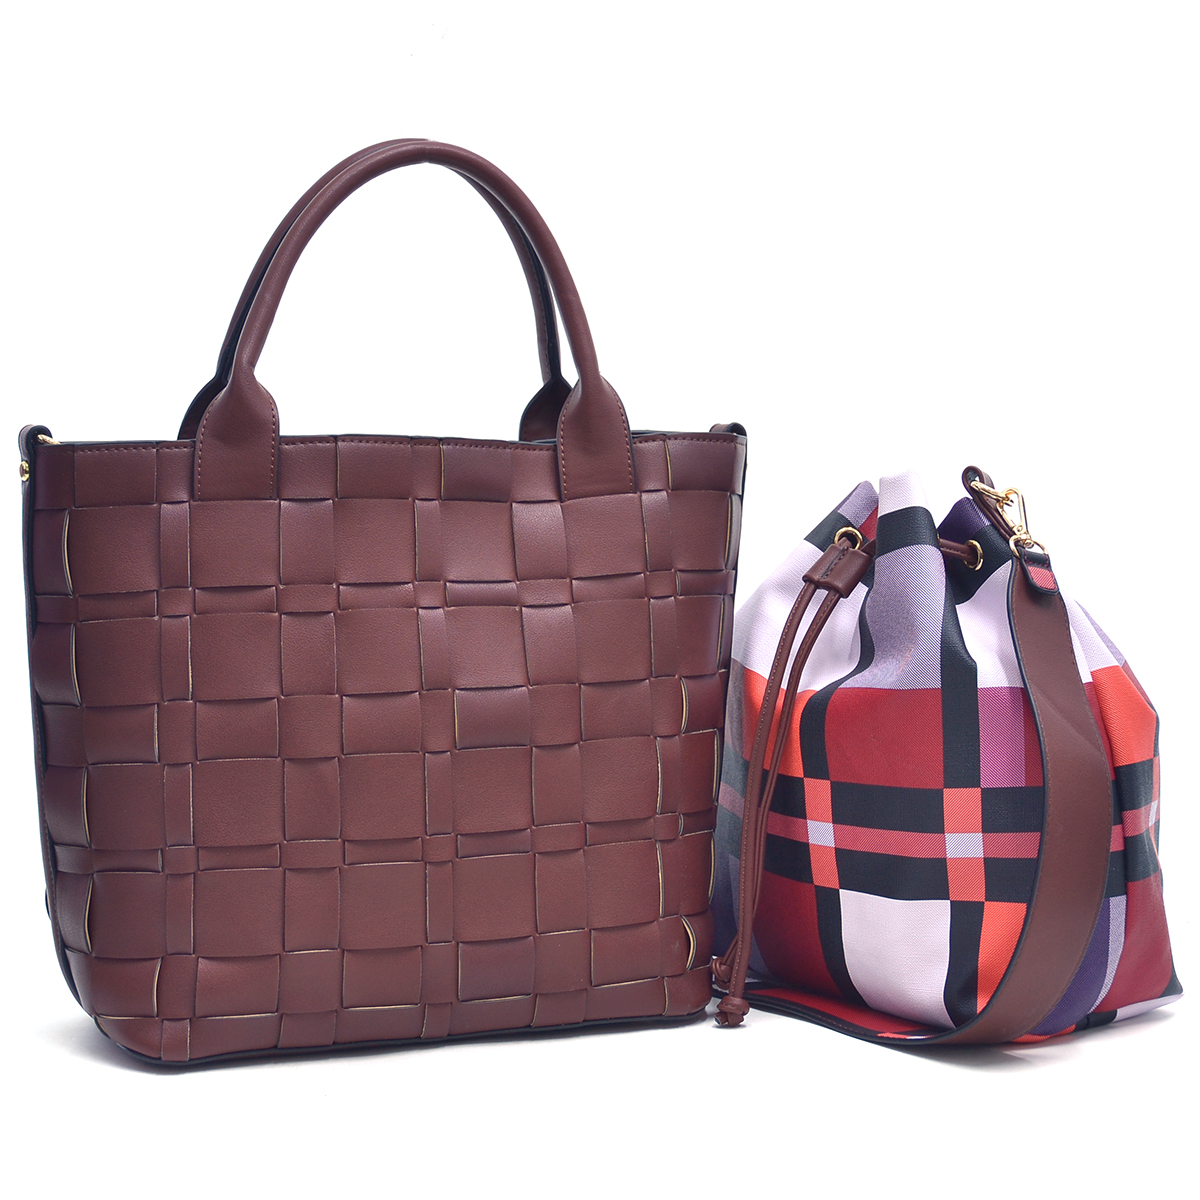 Dasein Faux Leather Checkered/Plaid Designed Tote with Bucket Bag inside